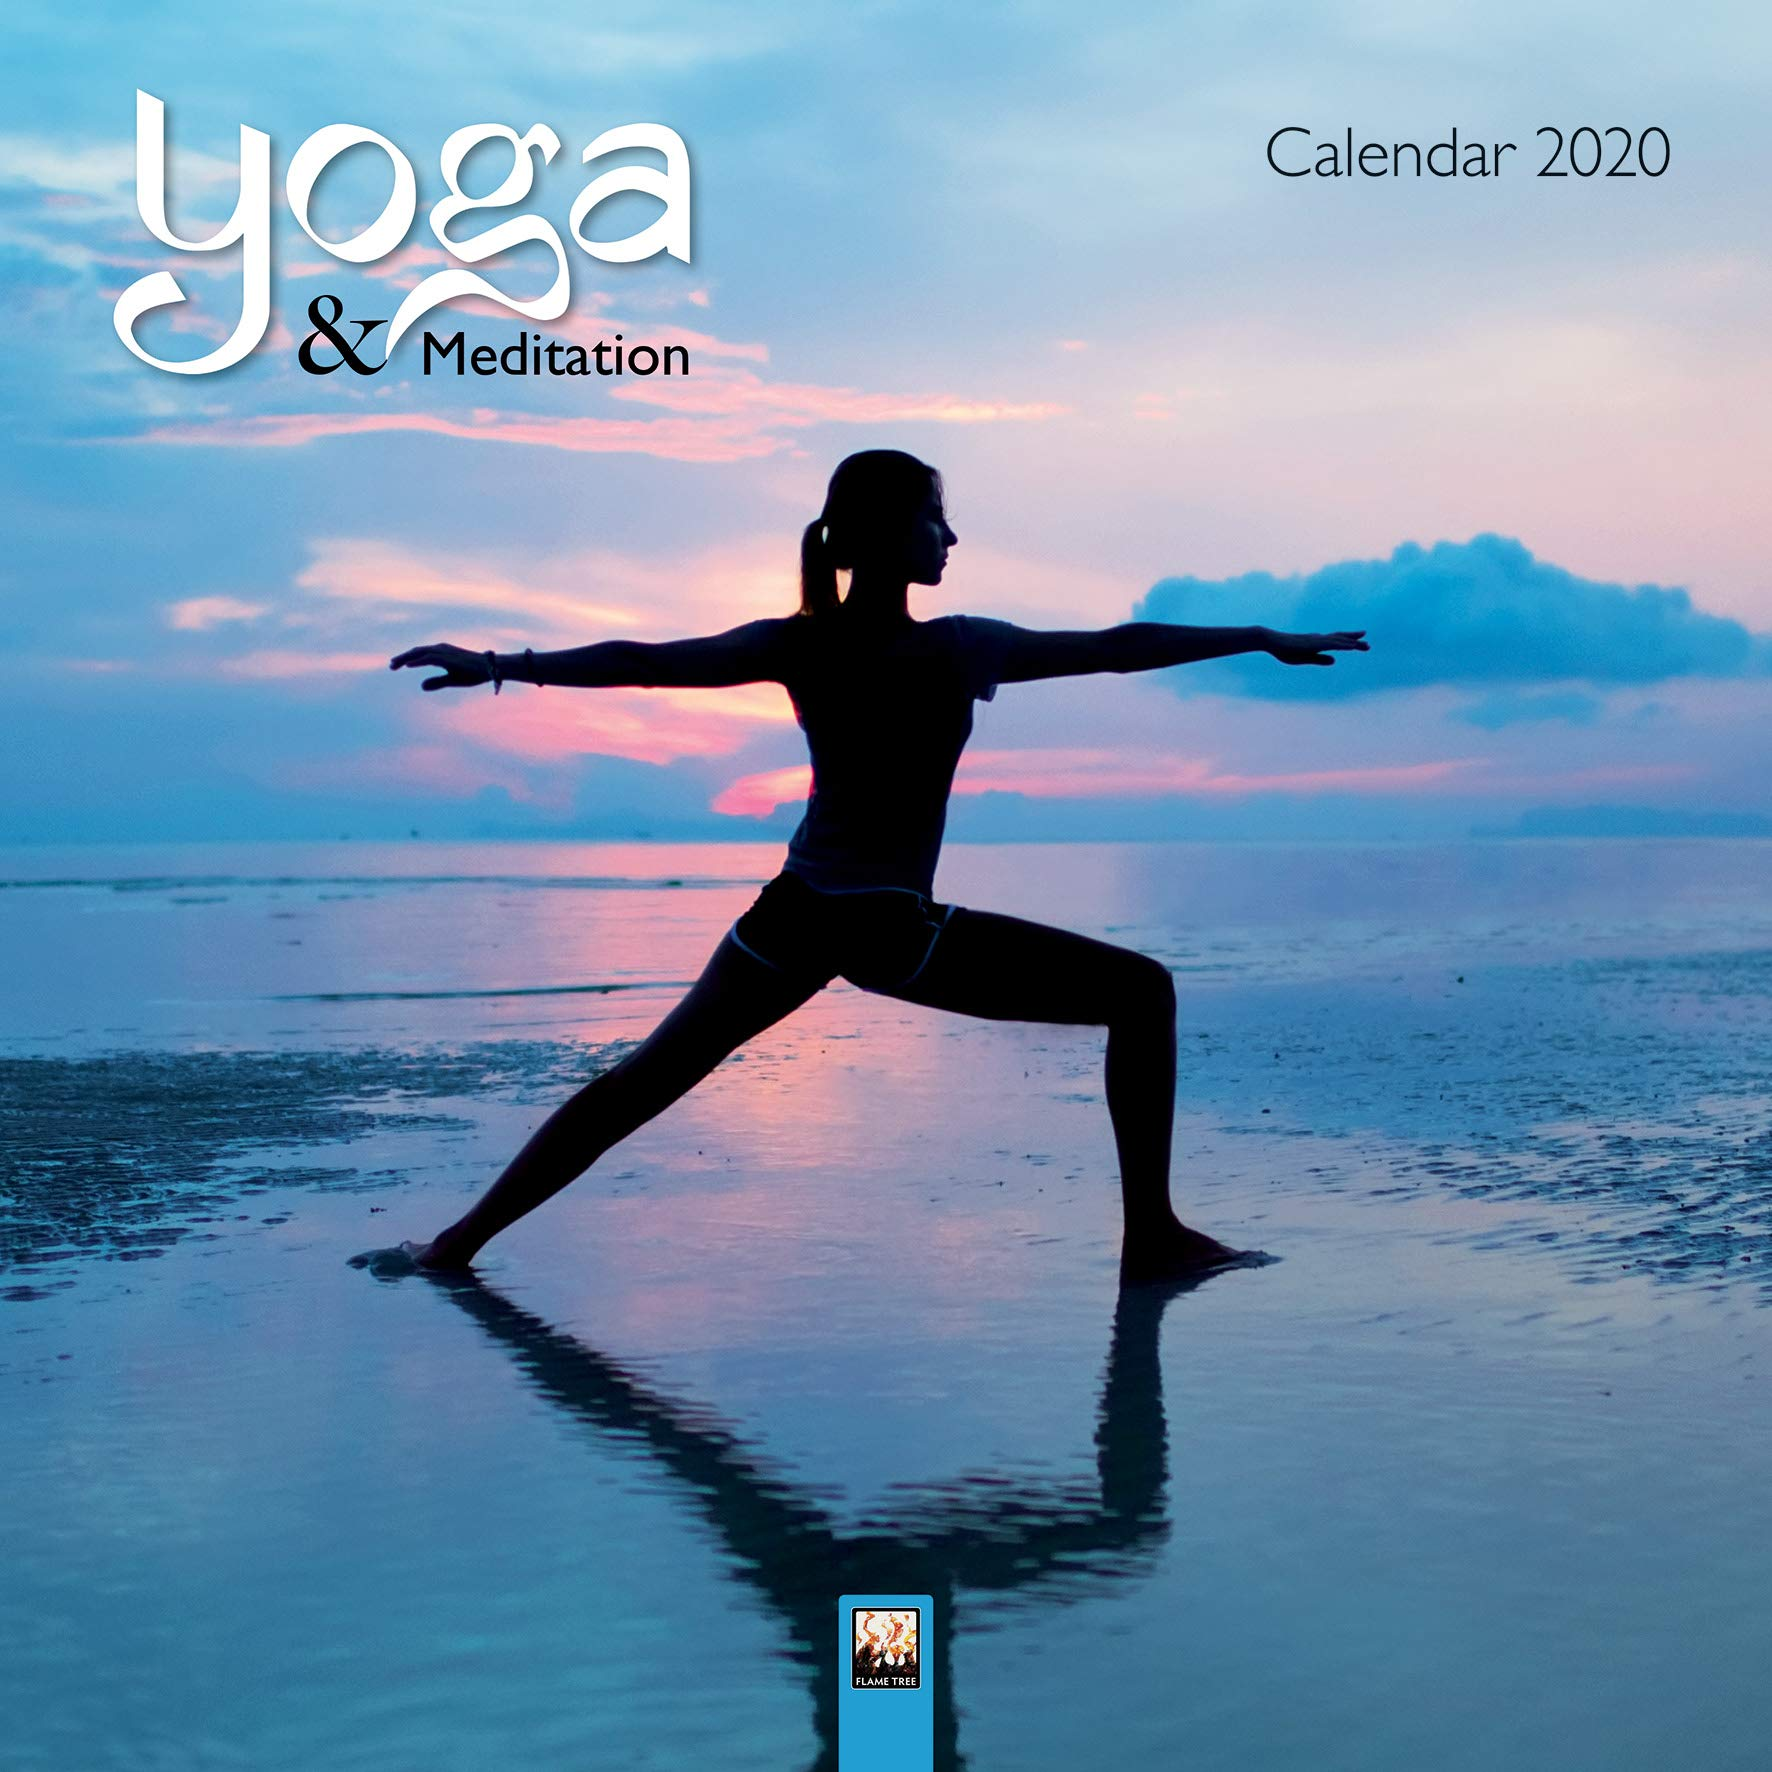 Yoga & Meditation Wall Calendar 2020 (Art Calendar): Flame ...